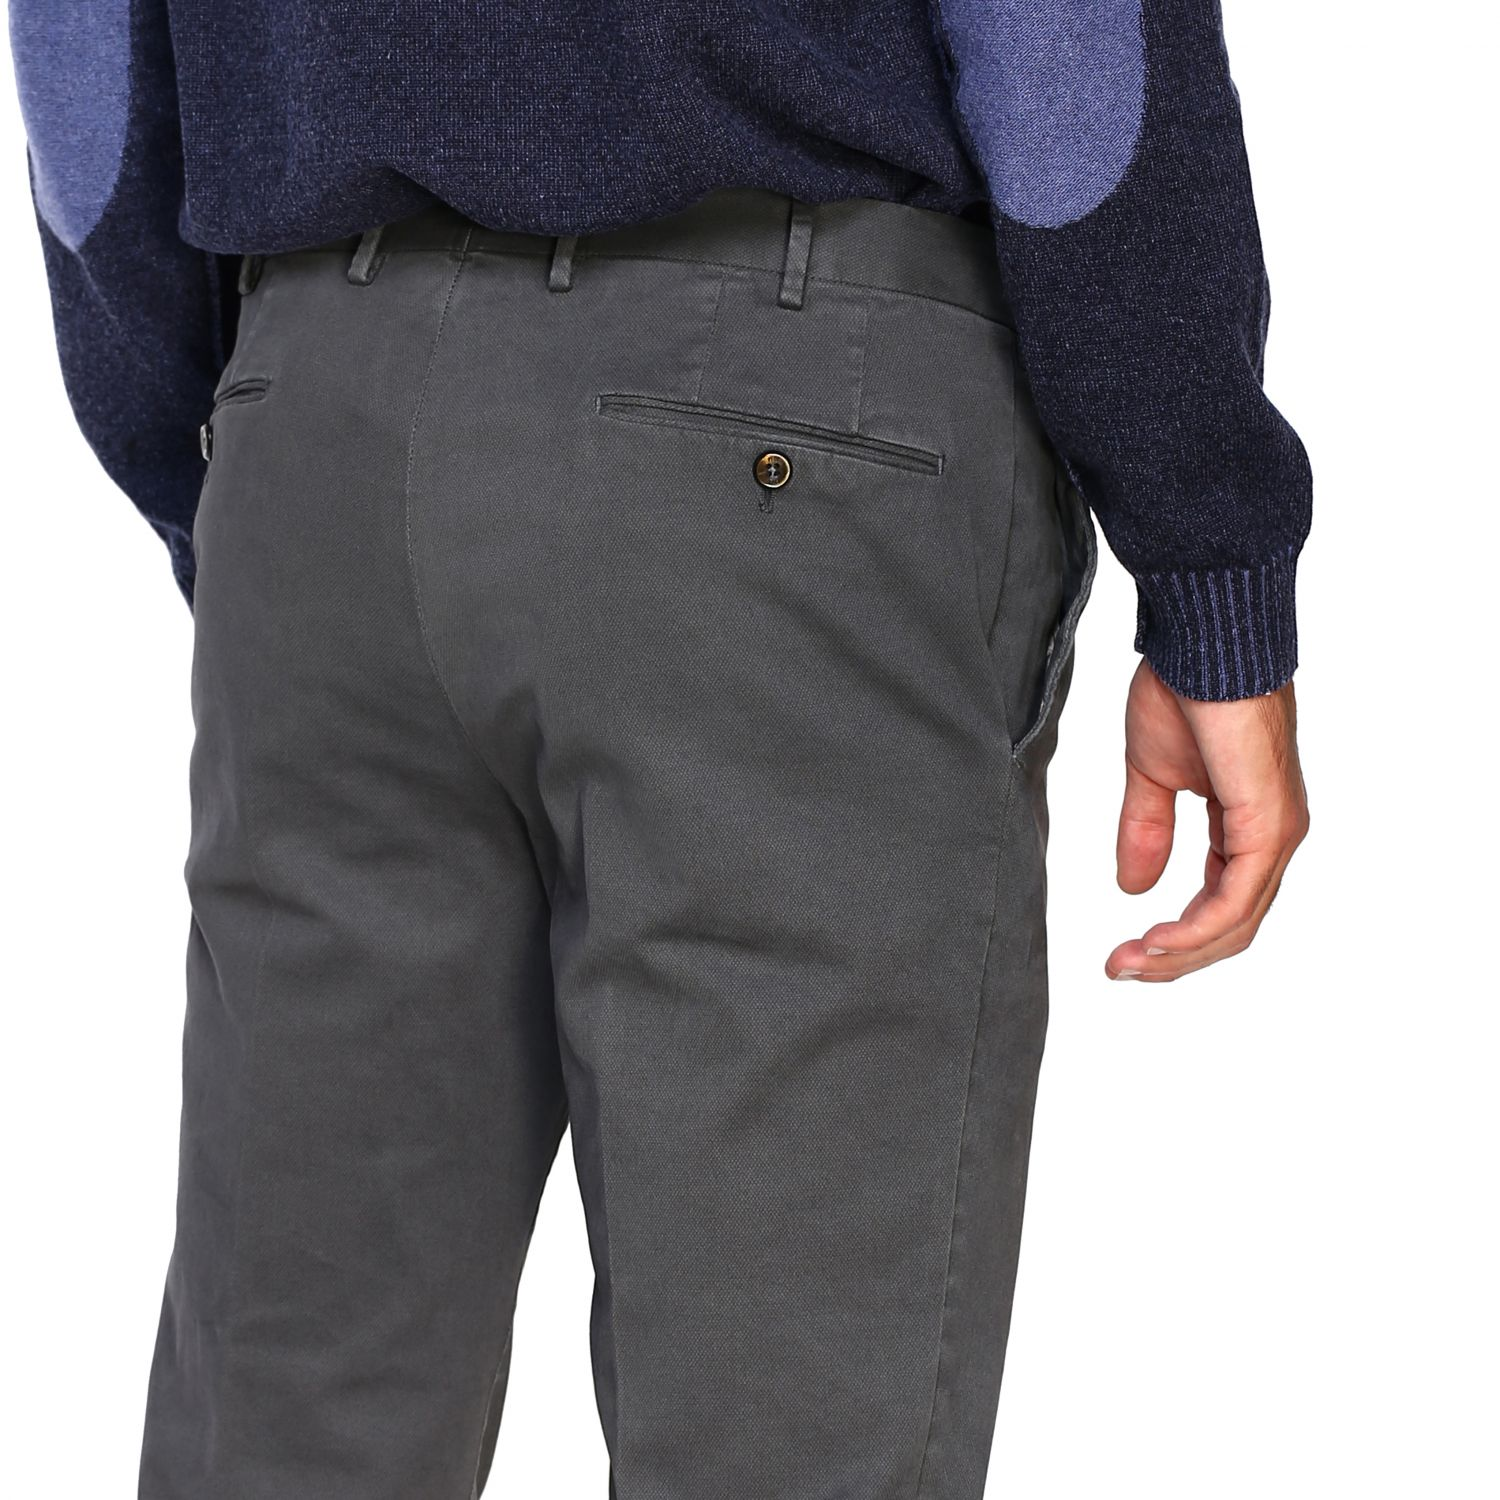 Trousers Pt: Trousers men Pt grey 5